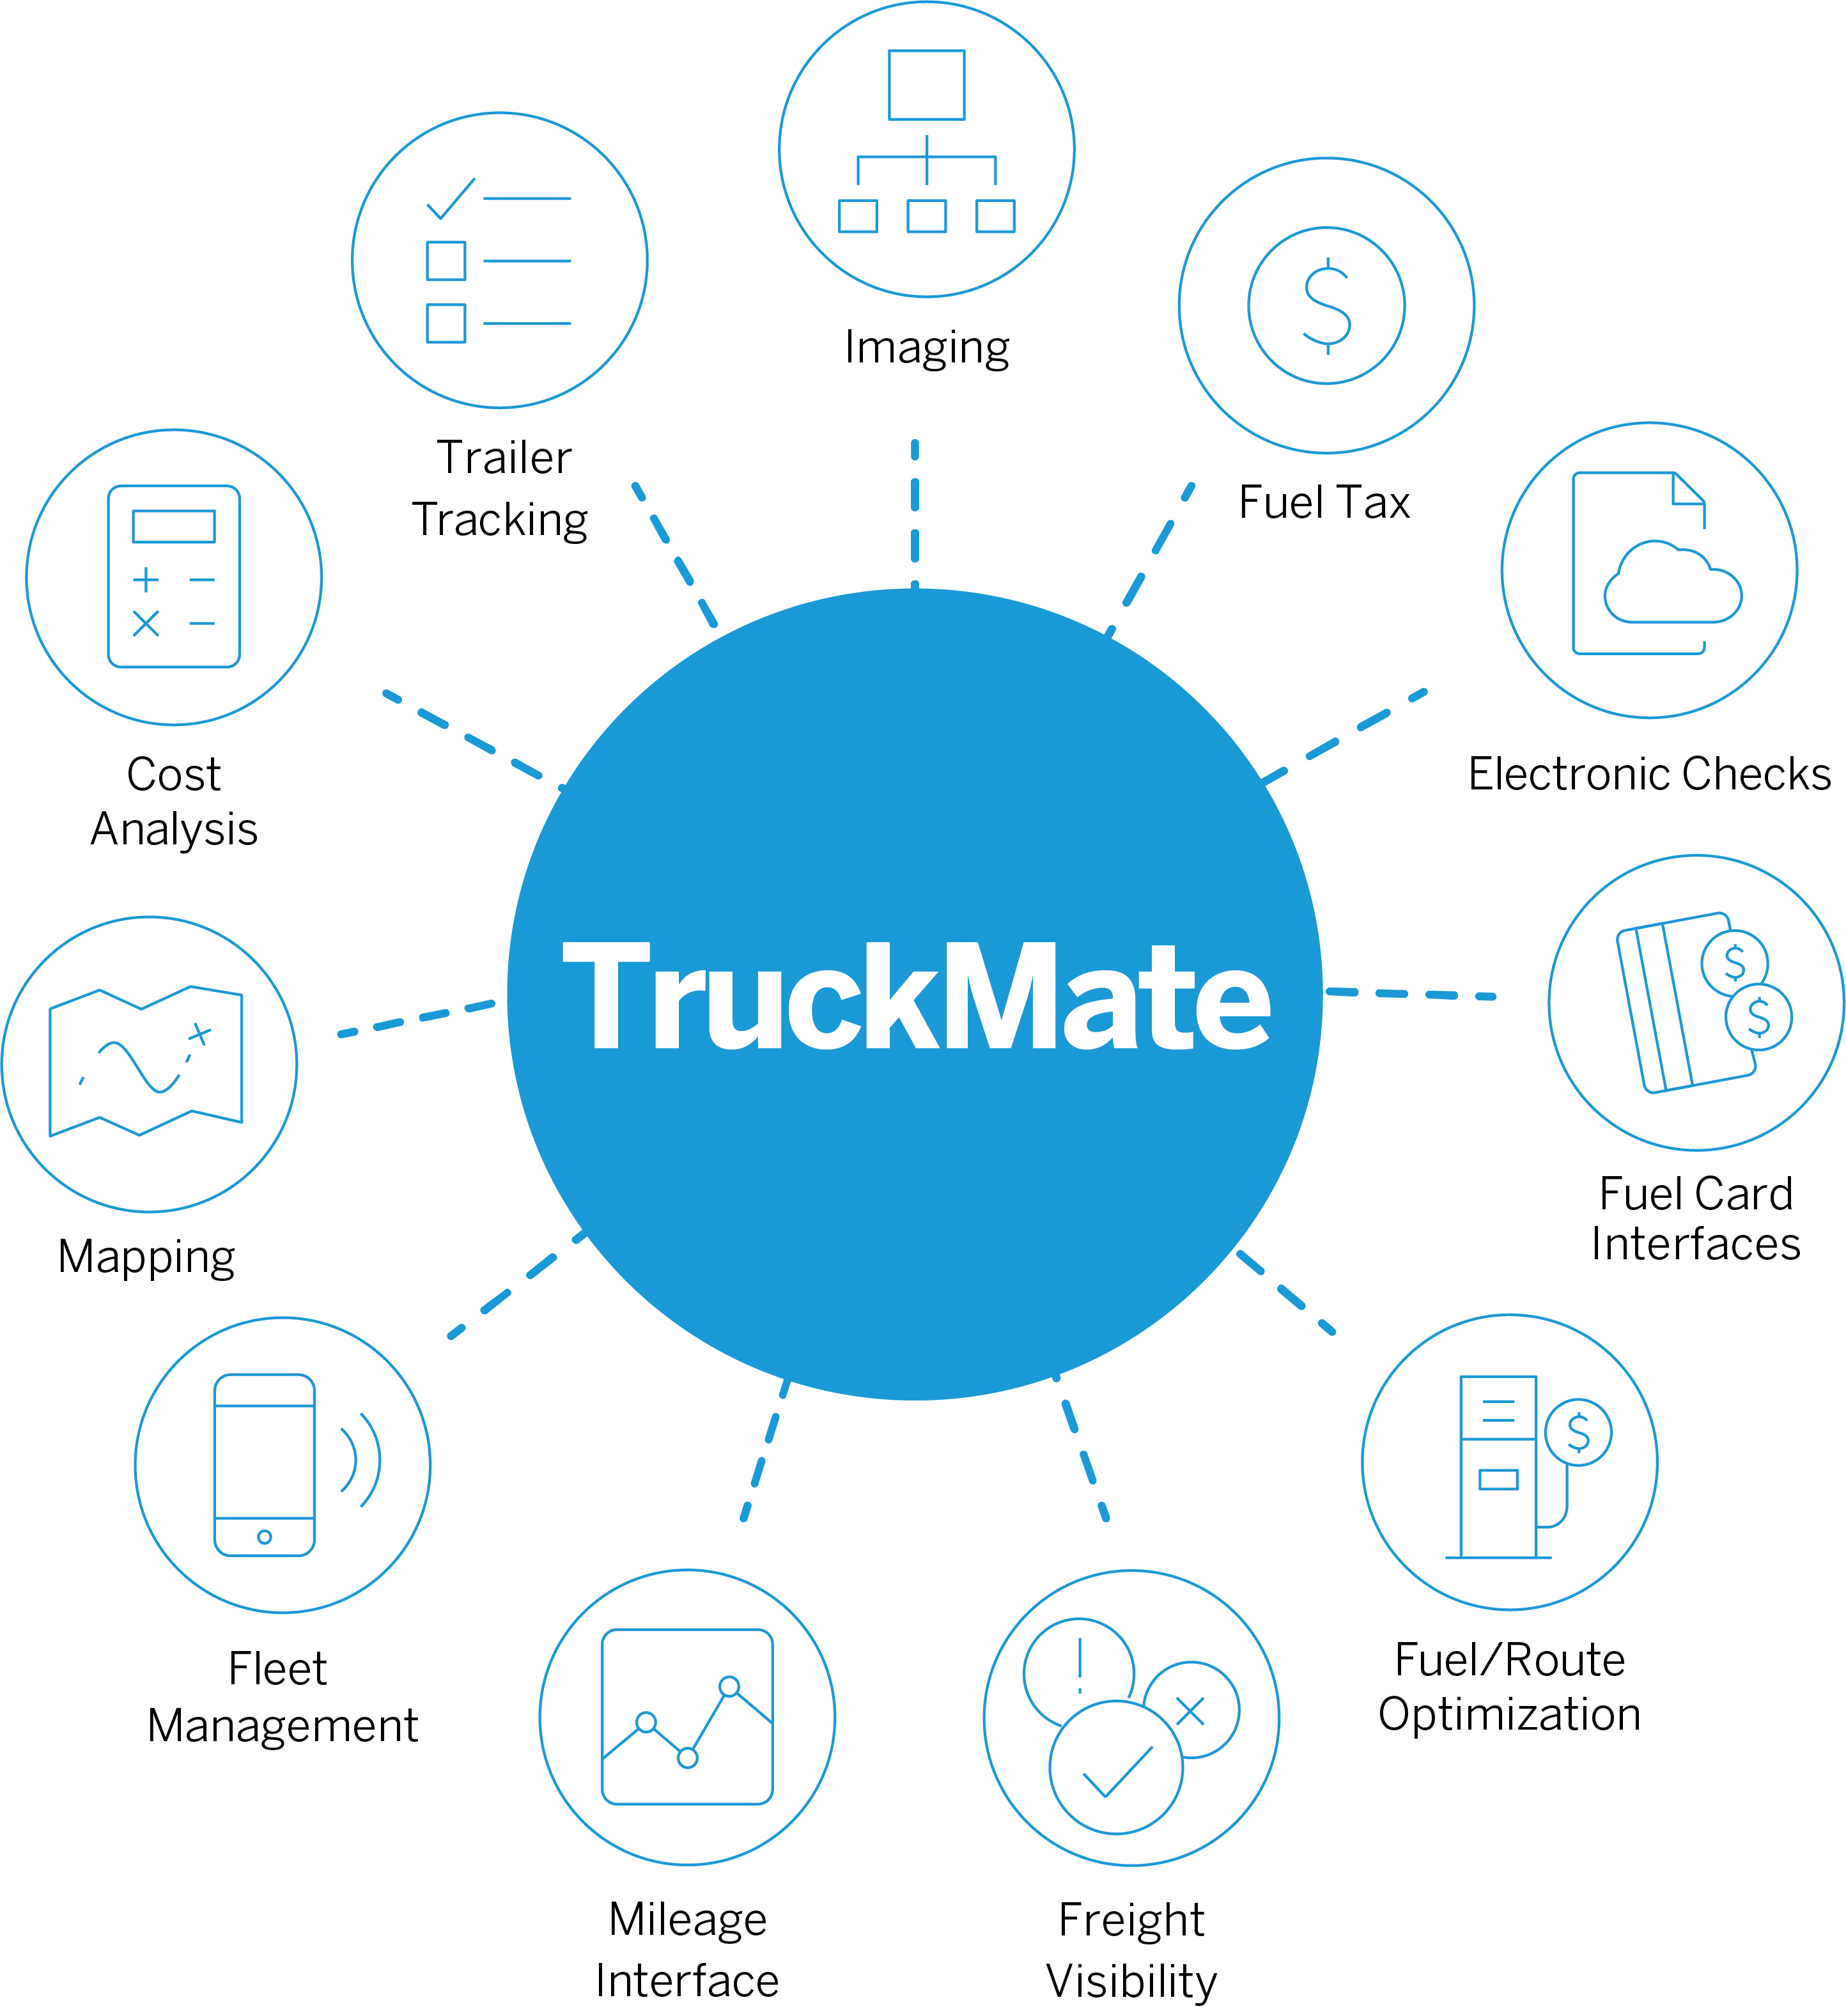 TruckMate infographic